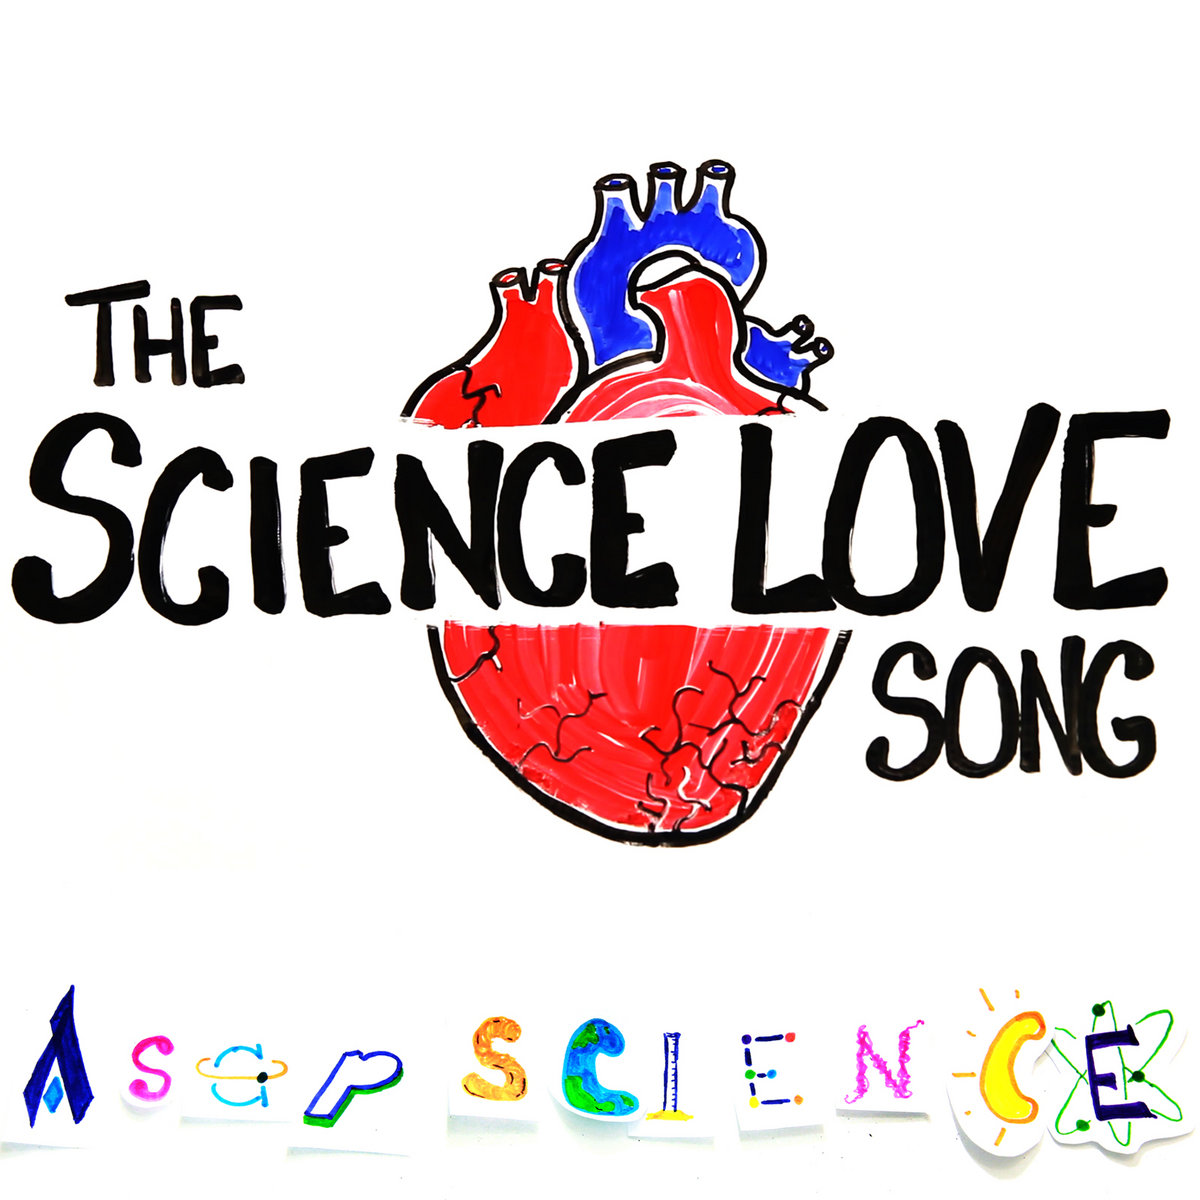 The science love song asapscience from asapscience music by asapscience gamestrikefo Image collections